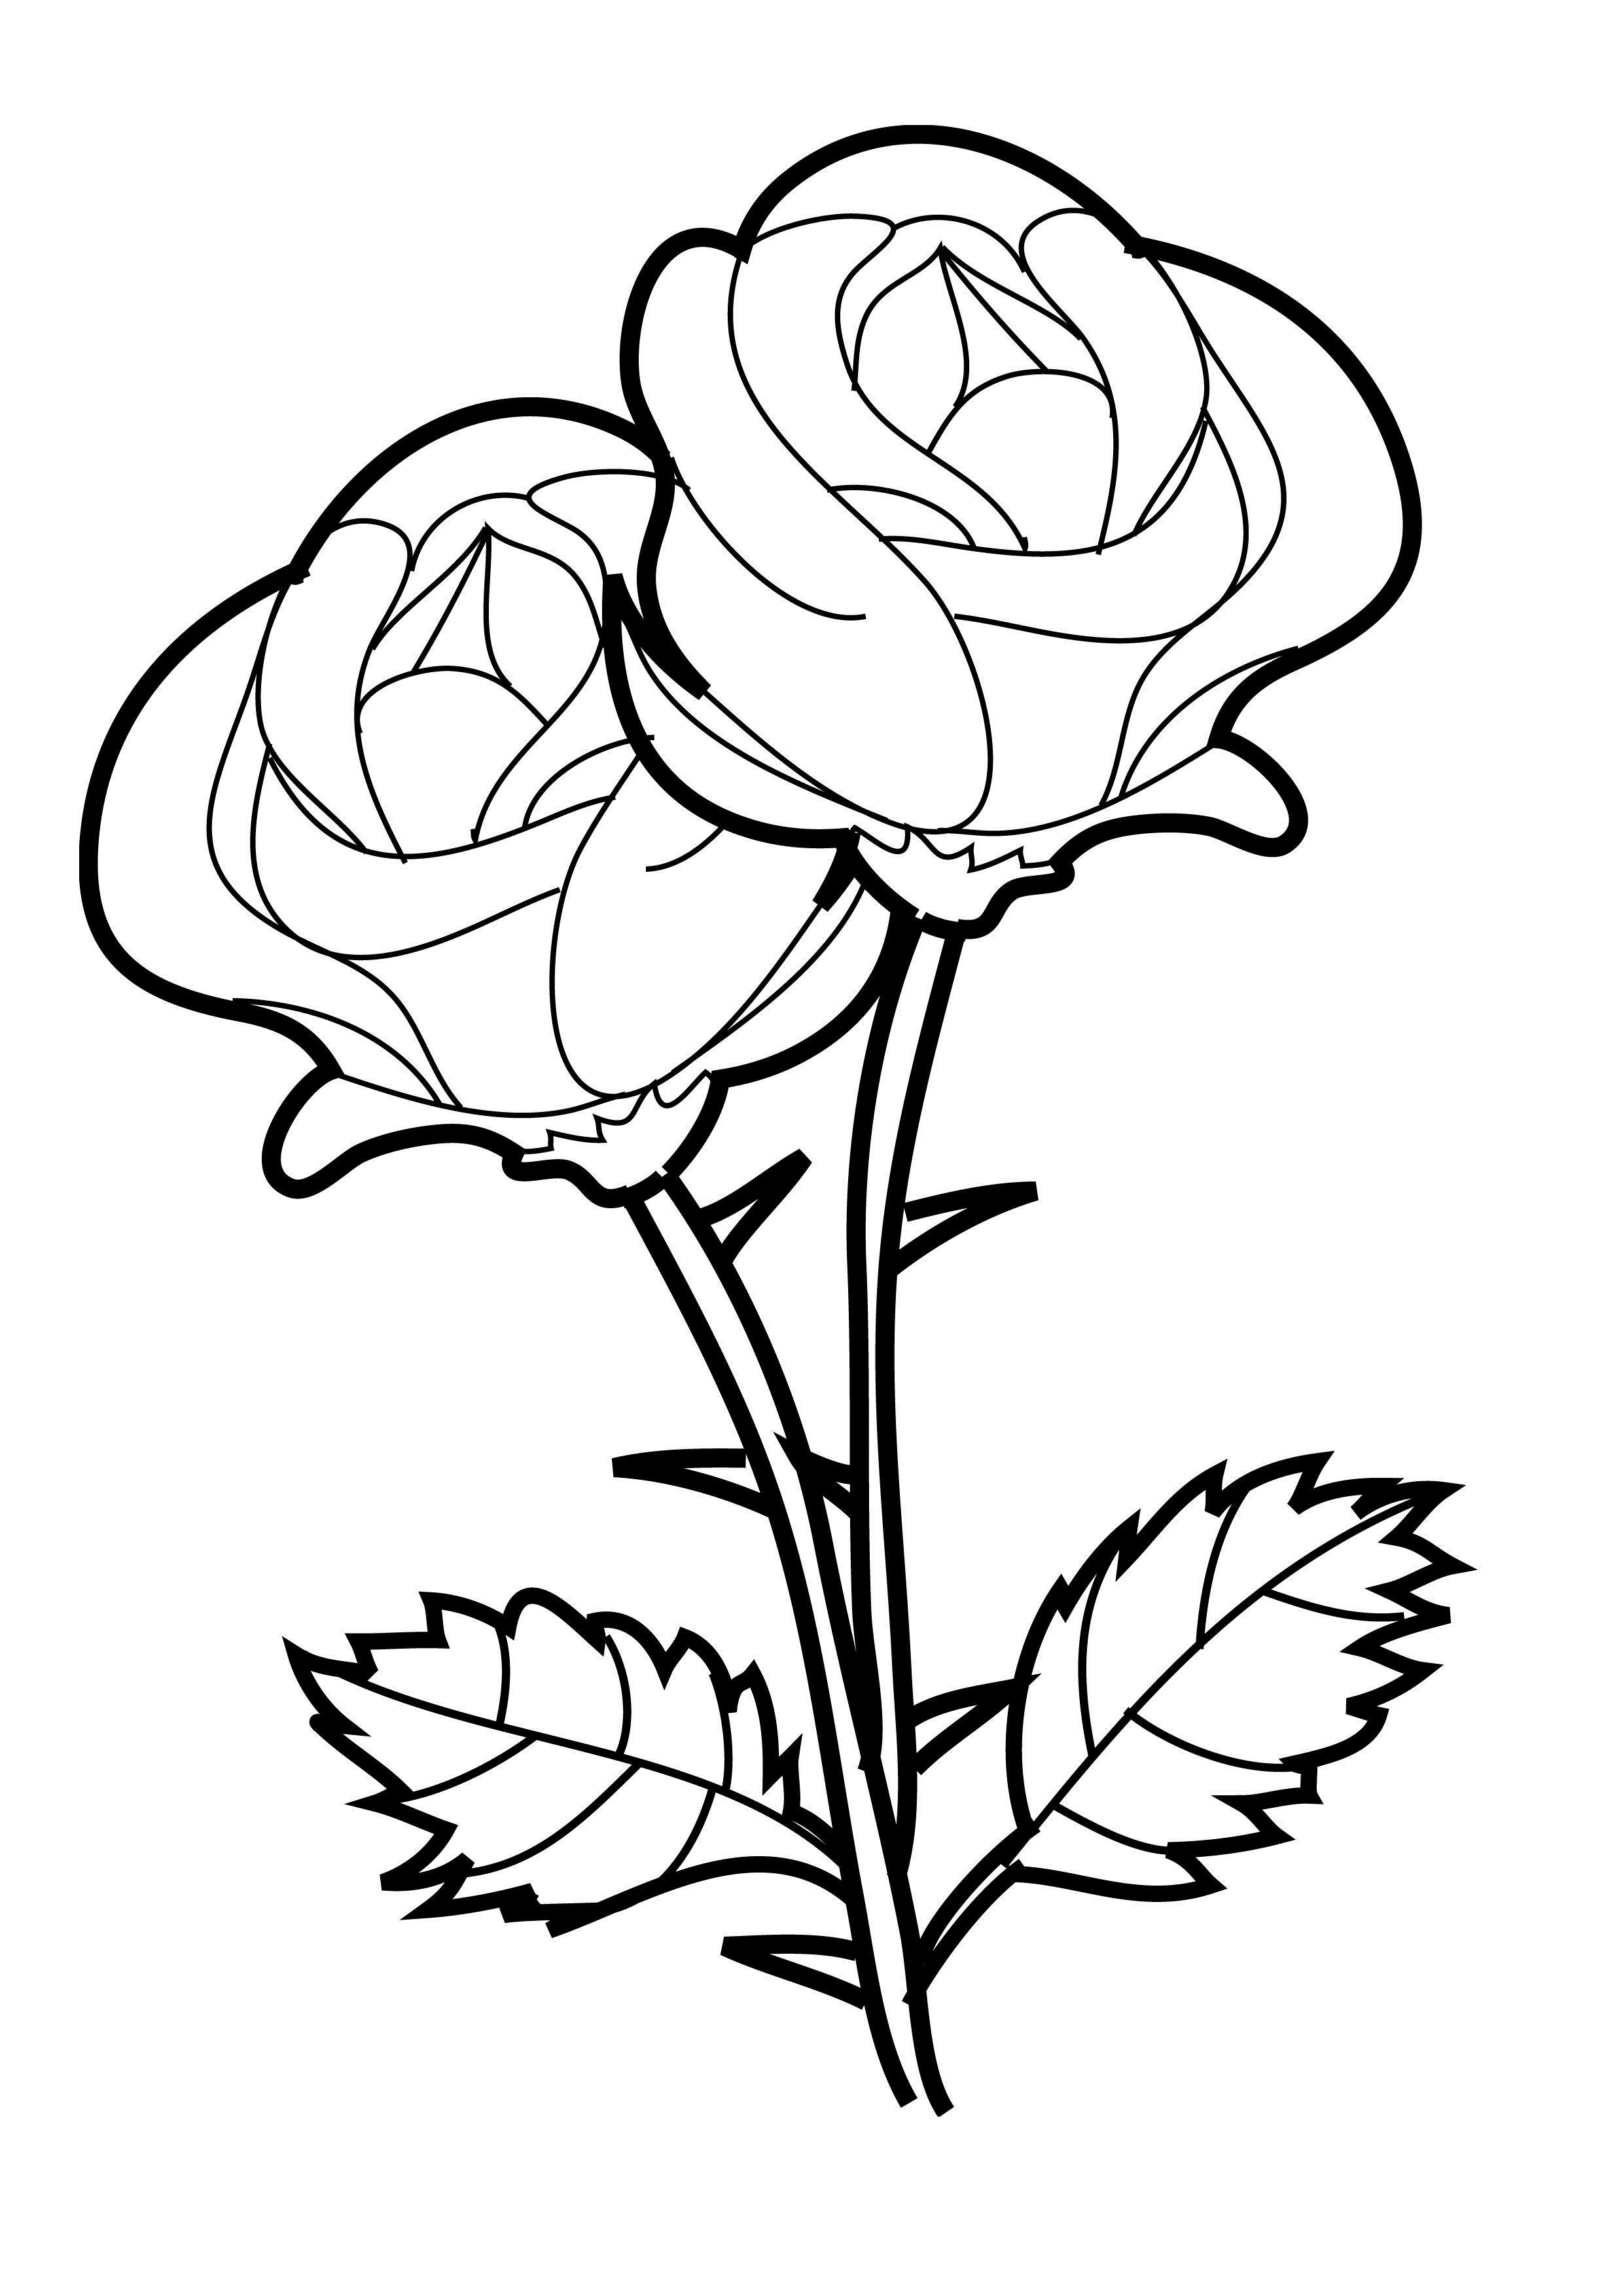 rose coloring pages to print roses coloring pages to download and print for free rose coloring print to pages